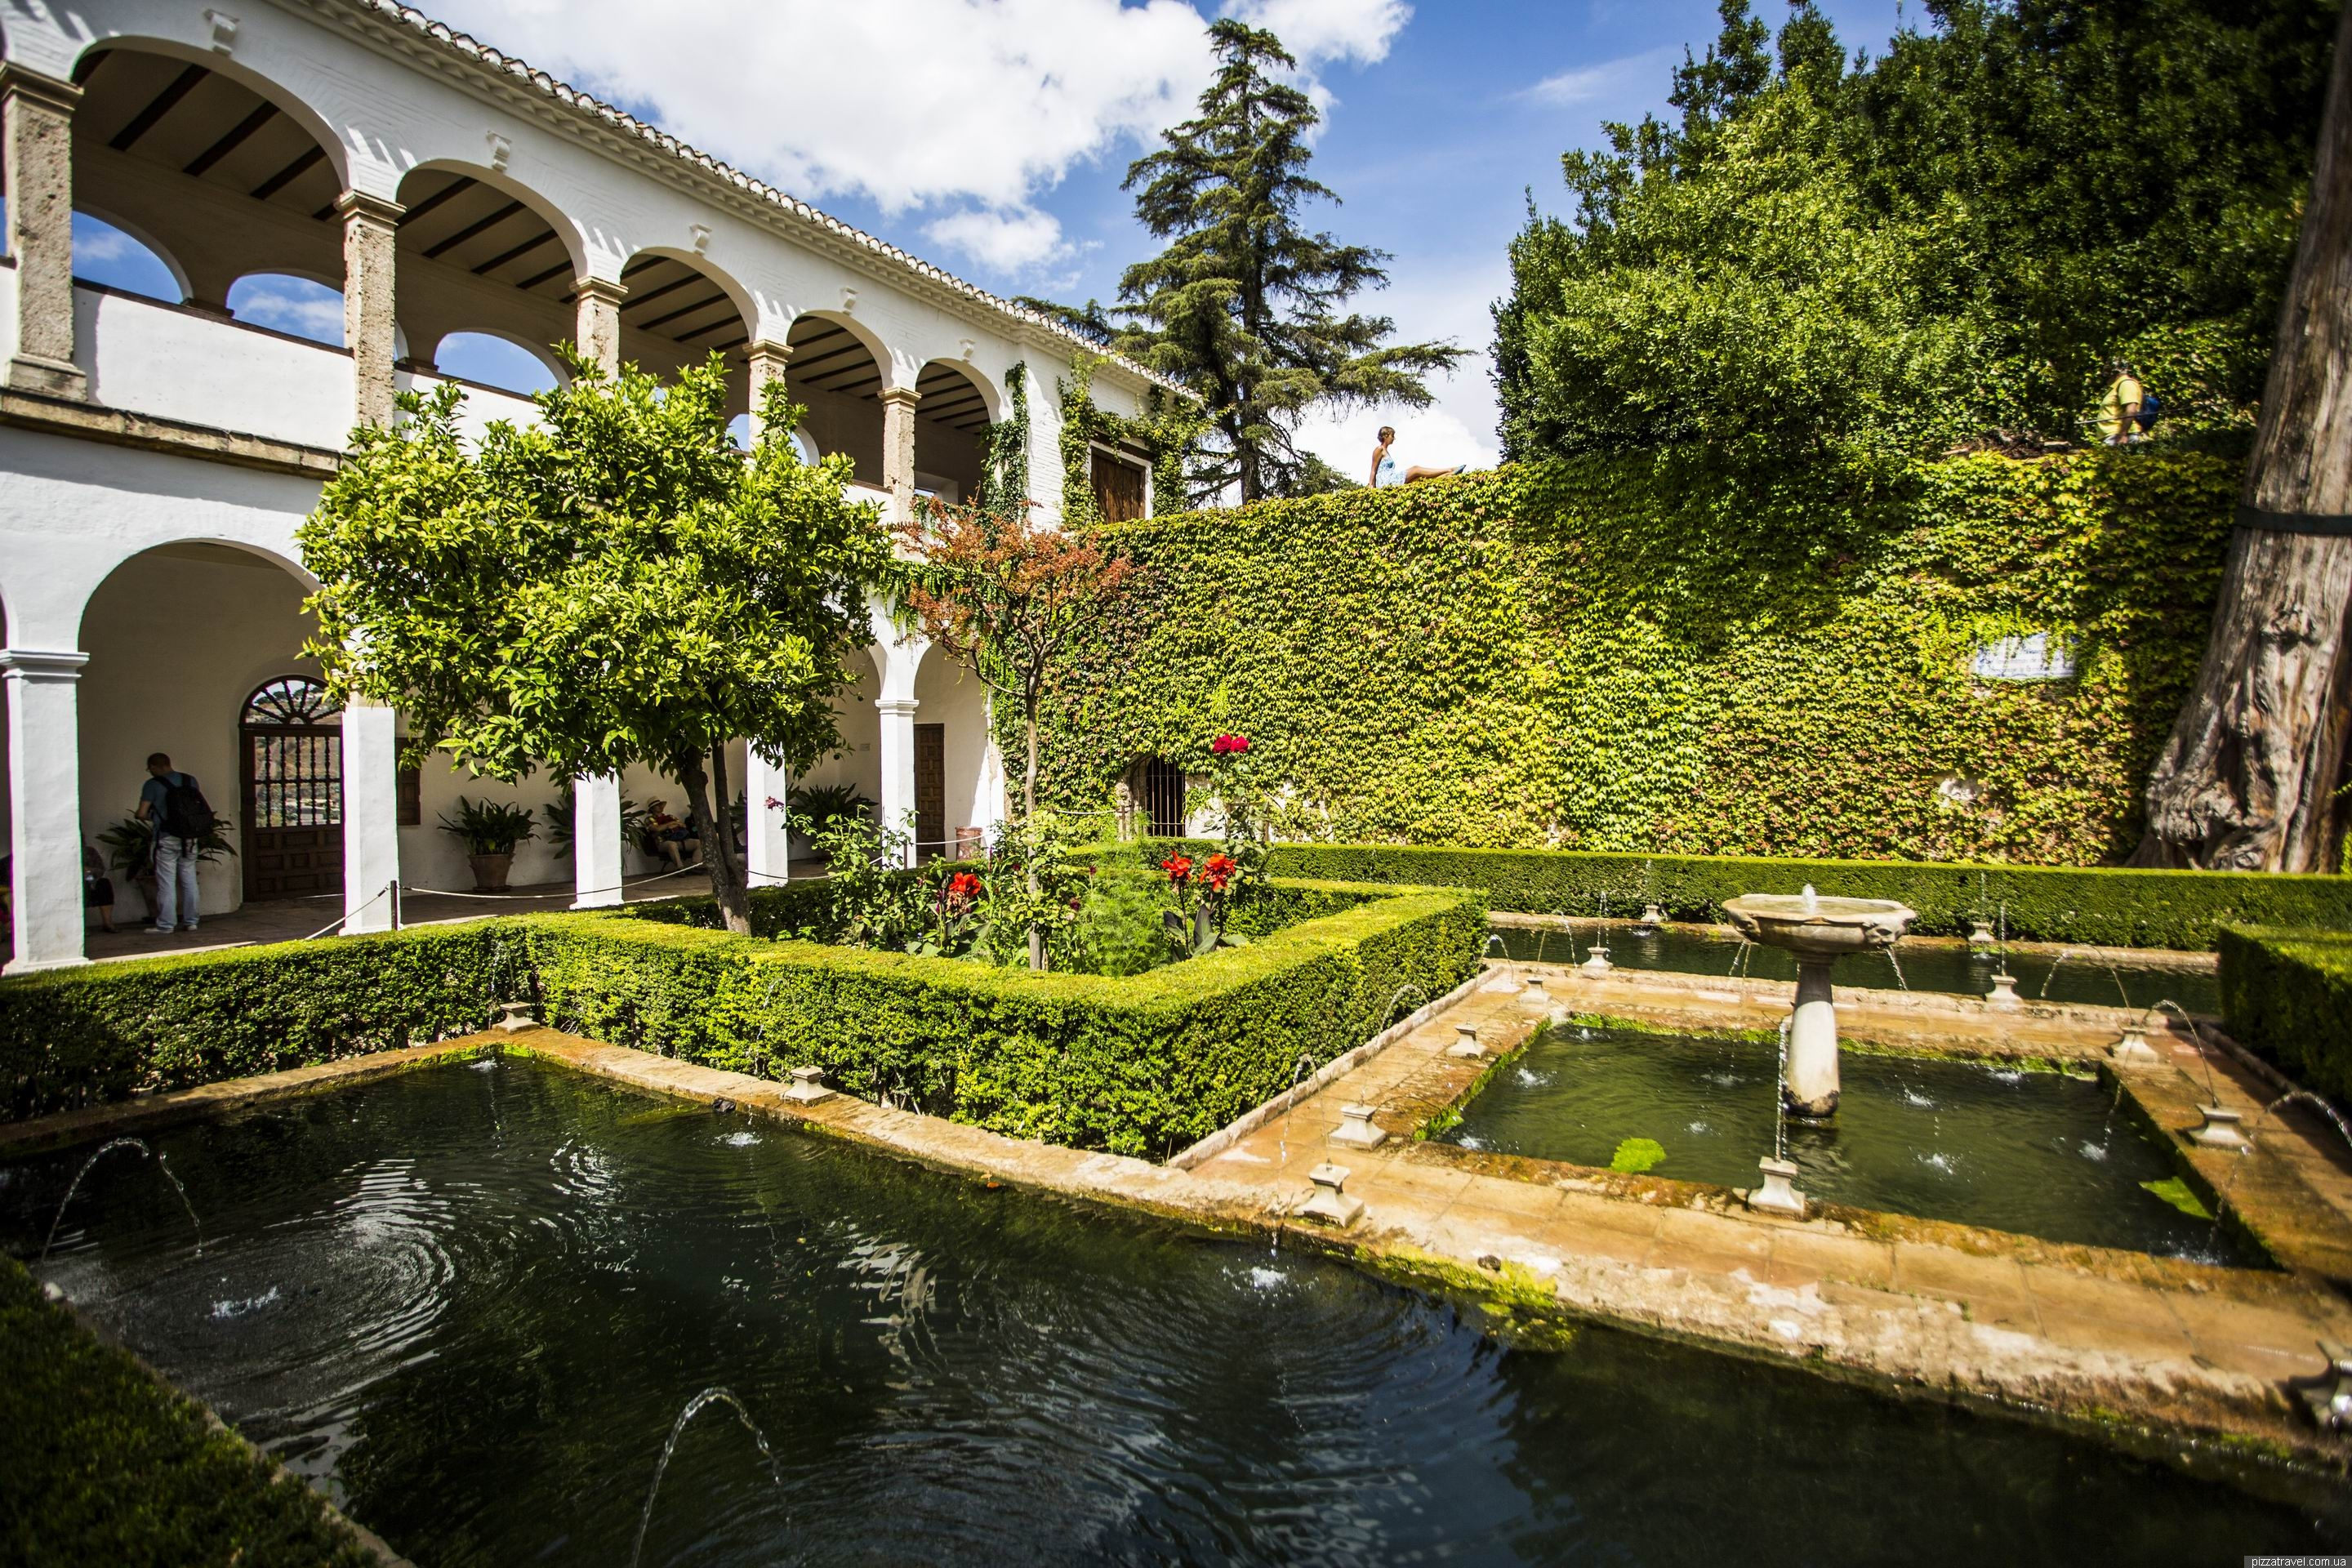 Granada spain blog about interesting places for Generalife gardens